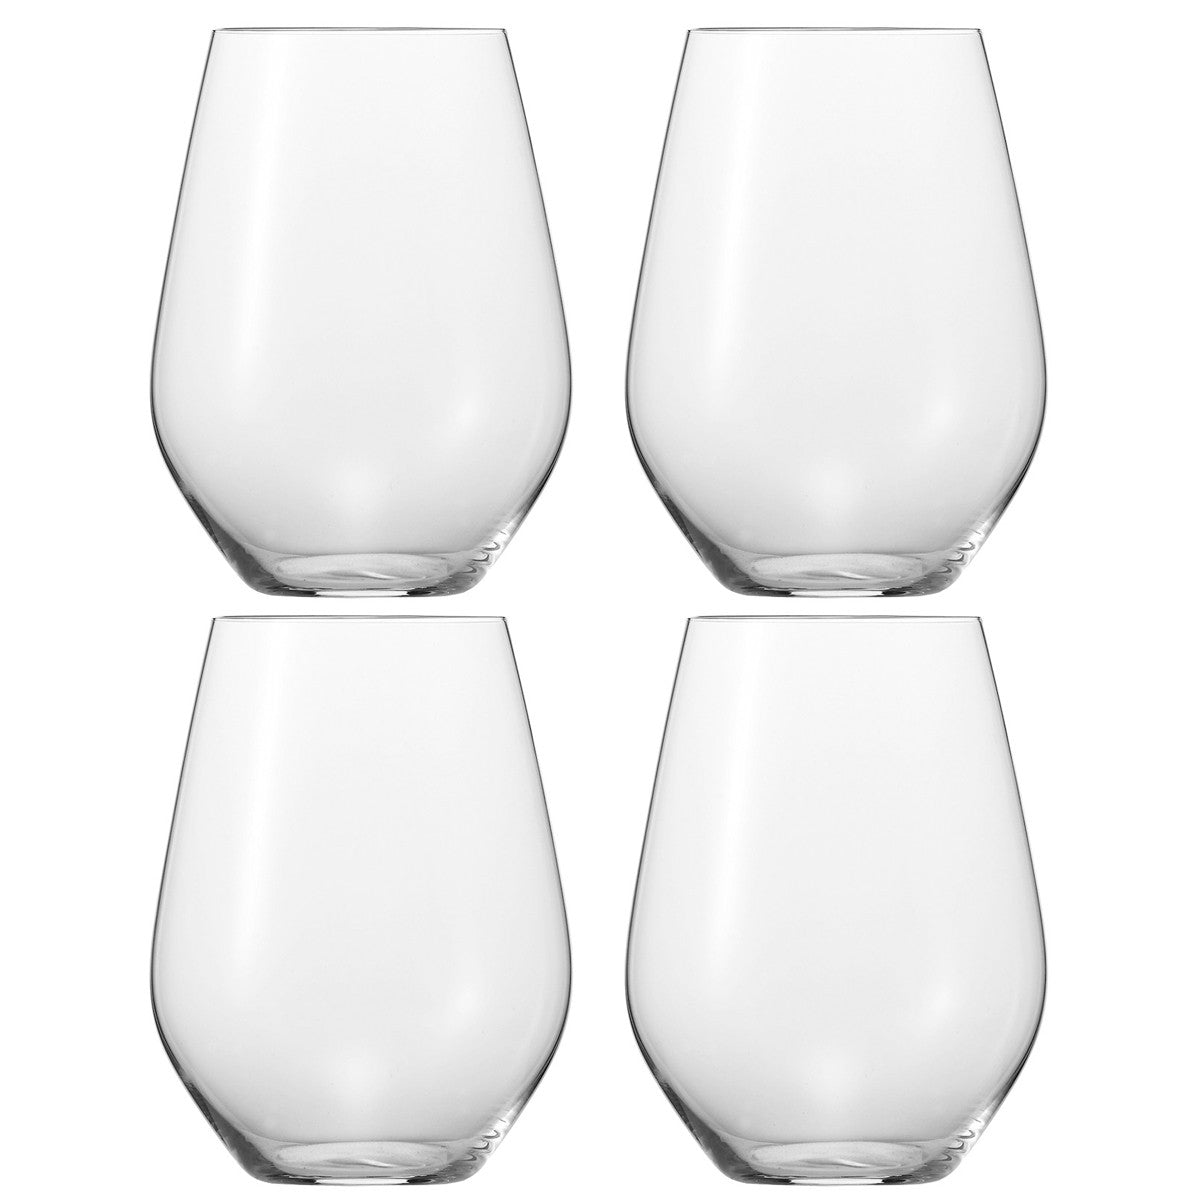 Authentis Casual Bordeaux Wine Glasses / Set 4